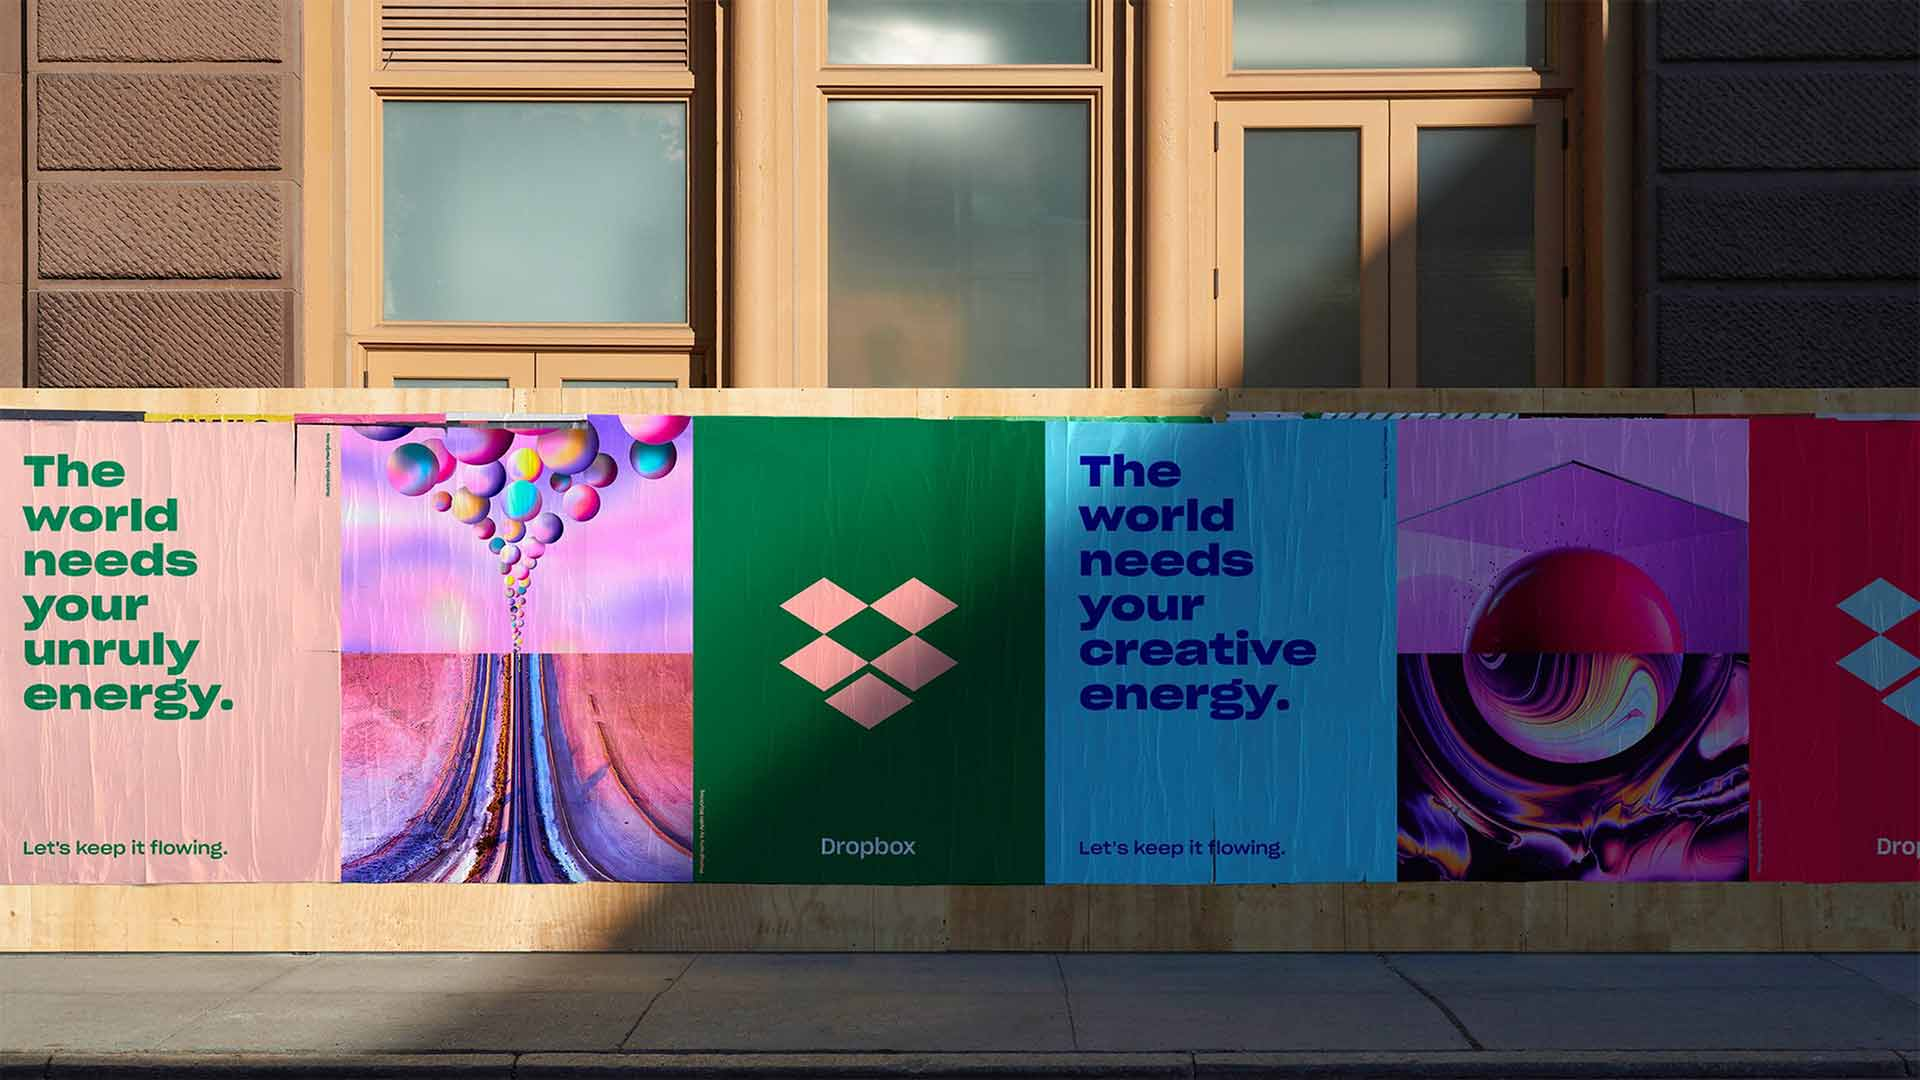 dropbox ad from Collins studio